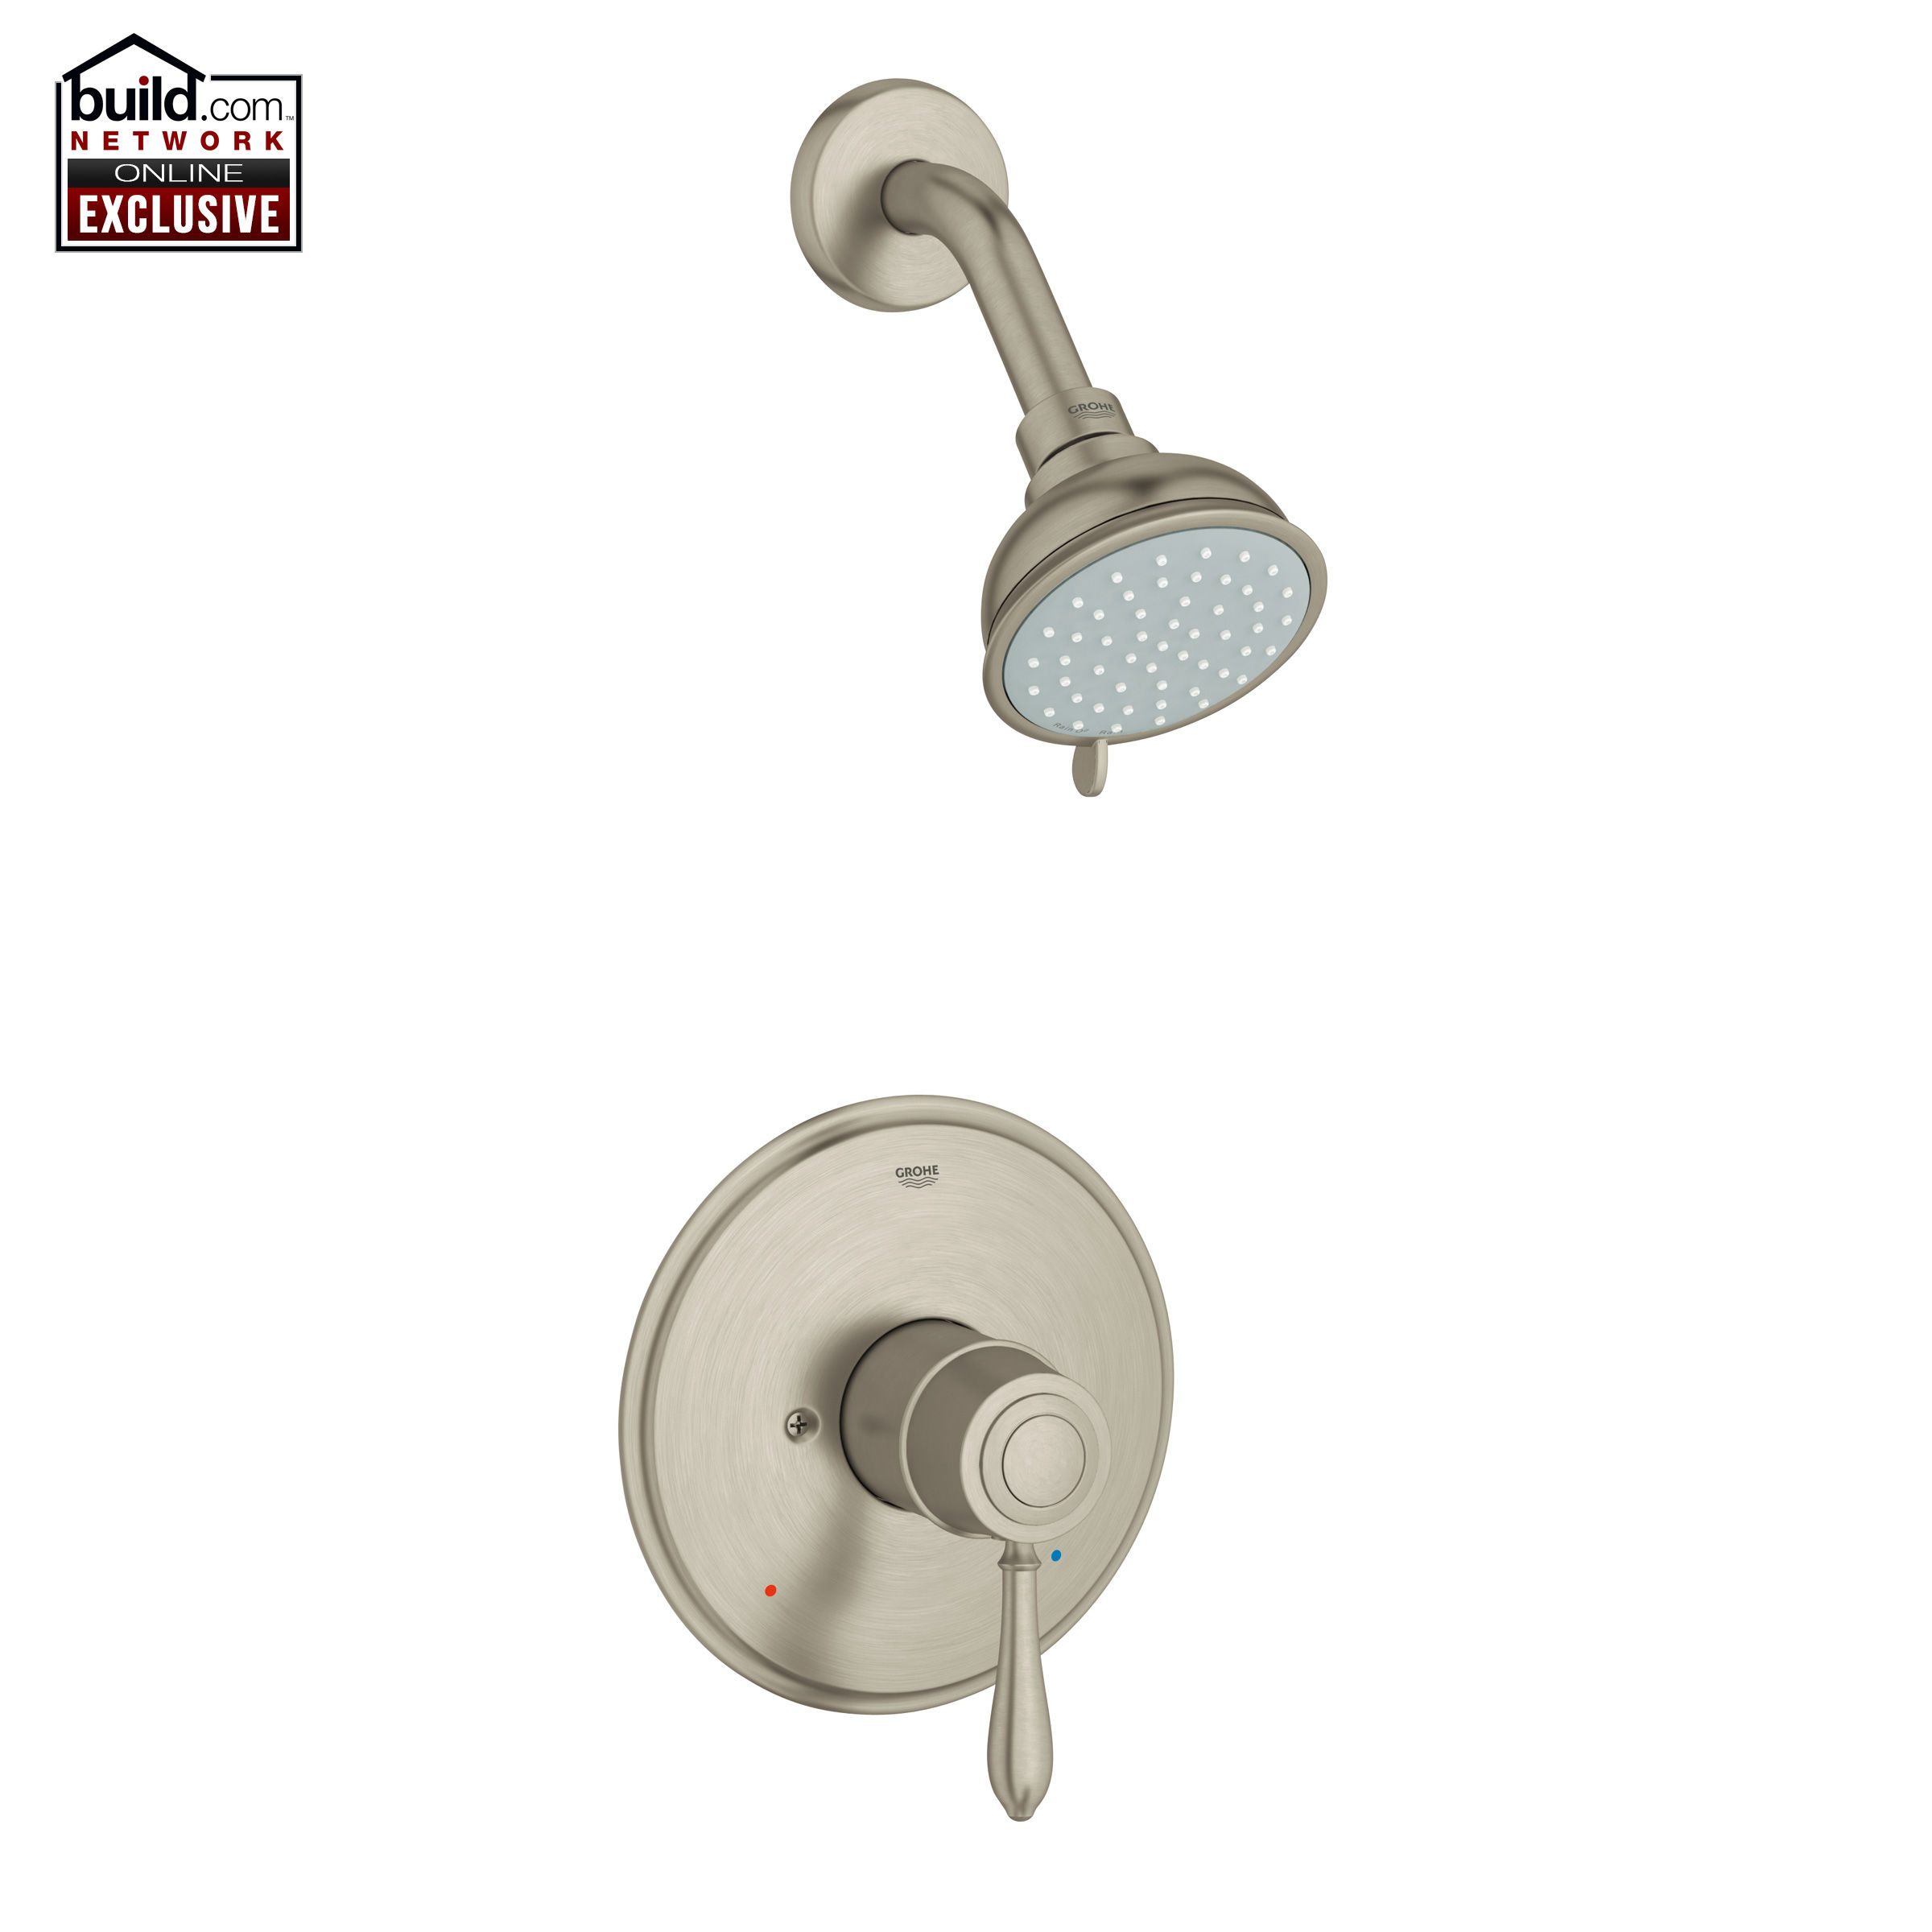 Grohe 35046EN1 Brushed Nickel Fairborn Shower Trim Package with ...